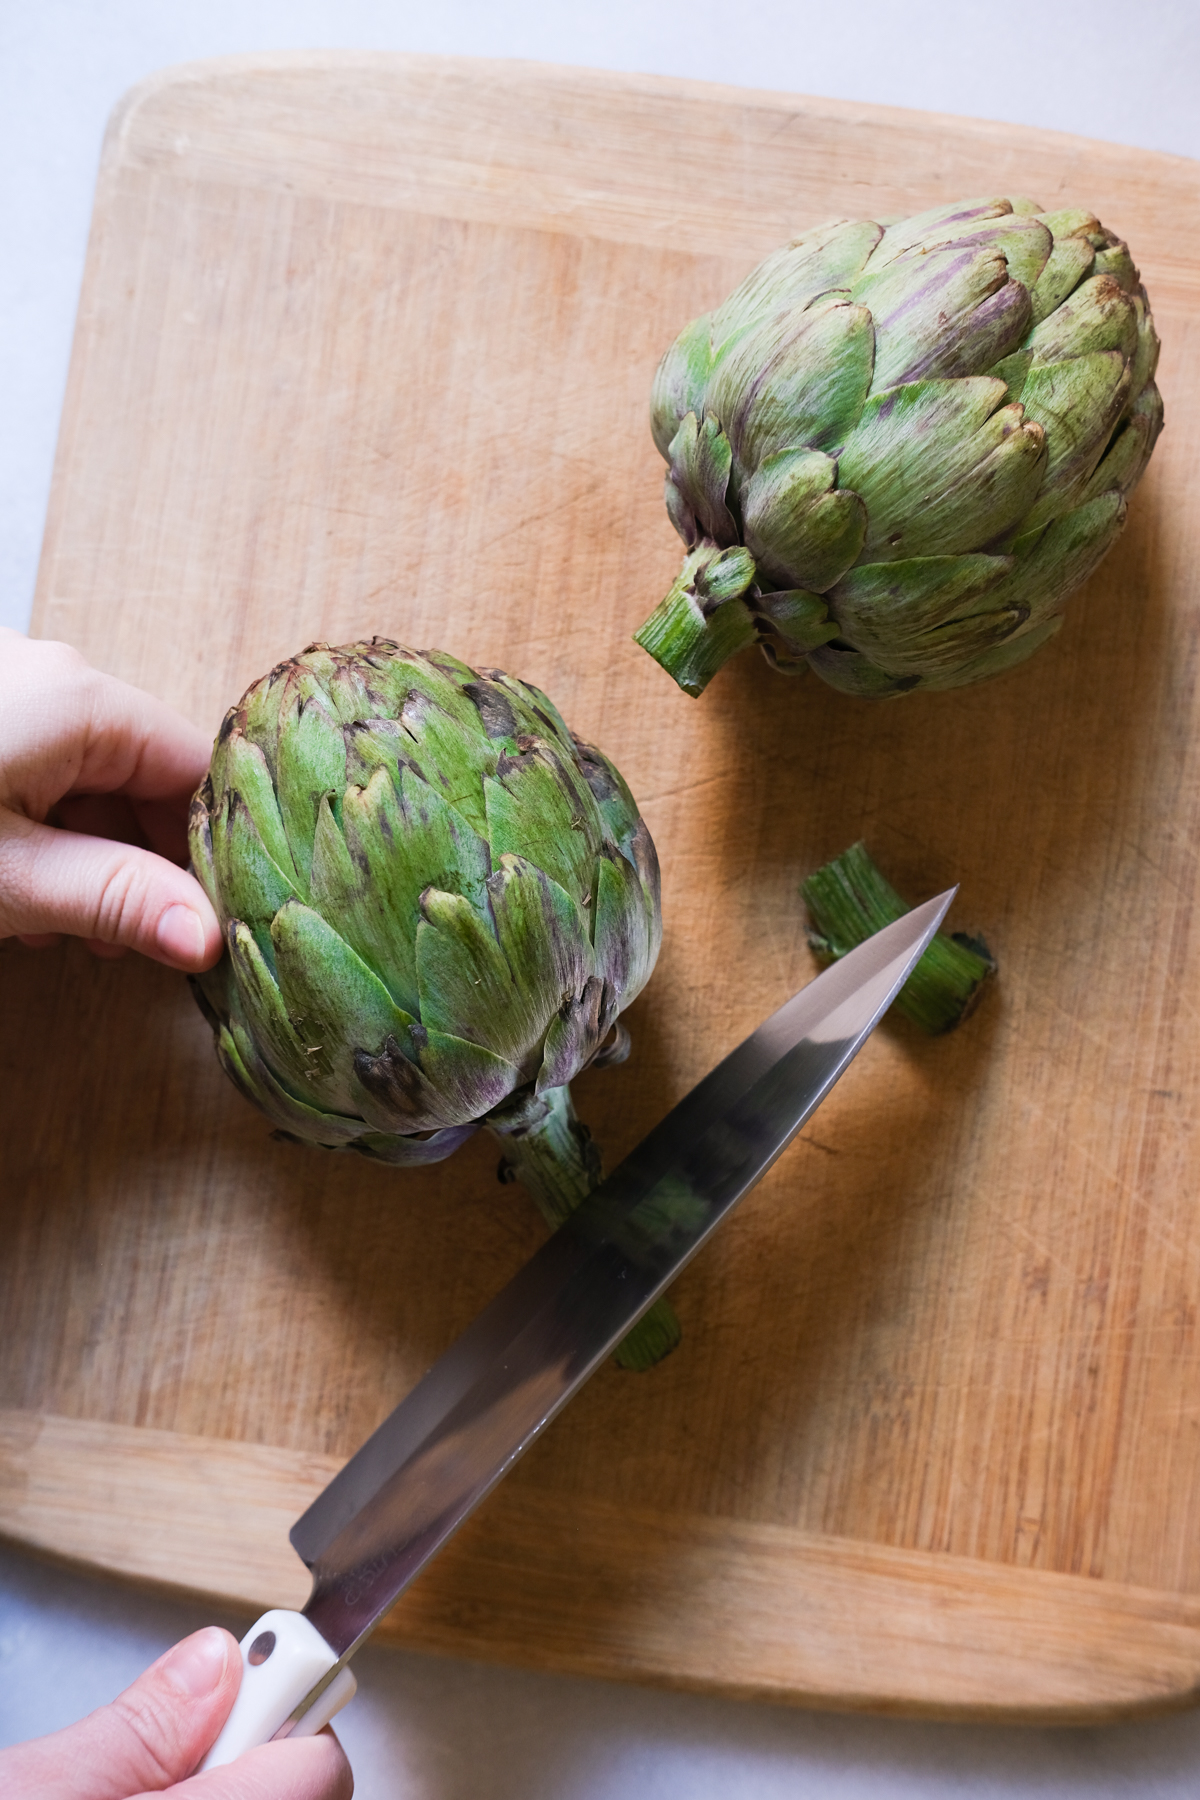 chopping the stem off an artichoke